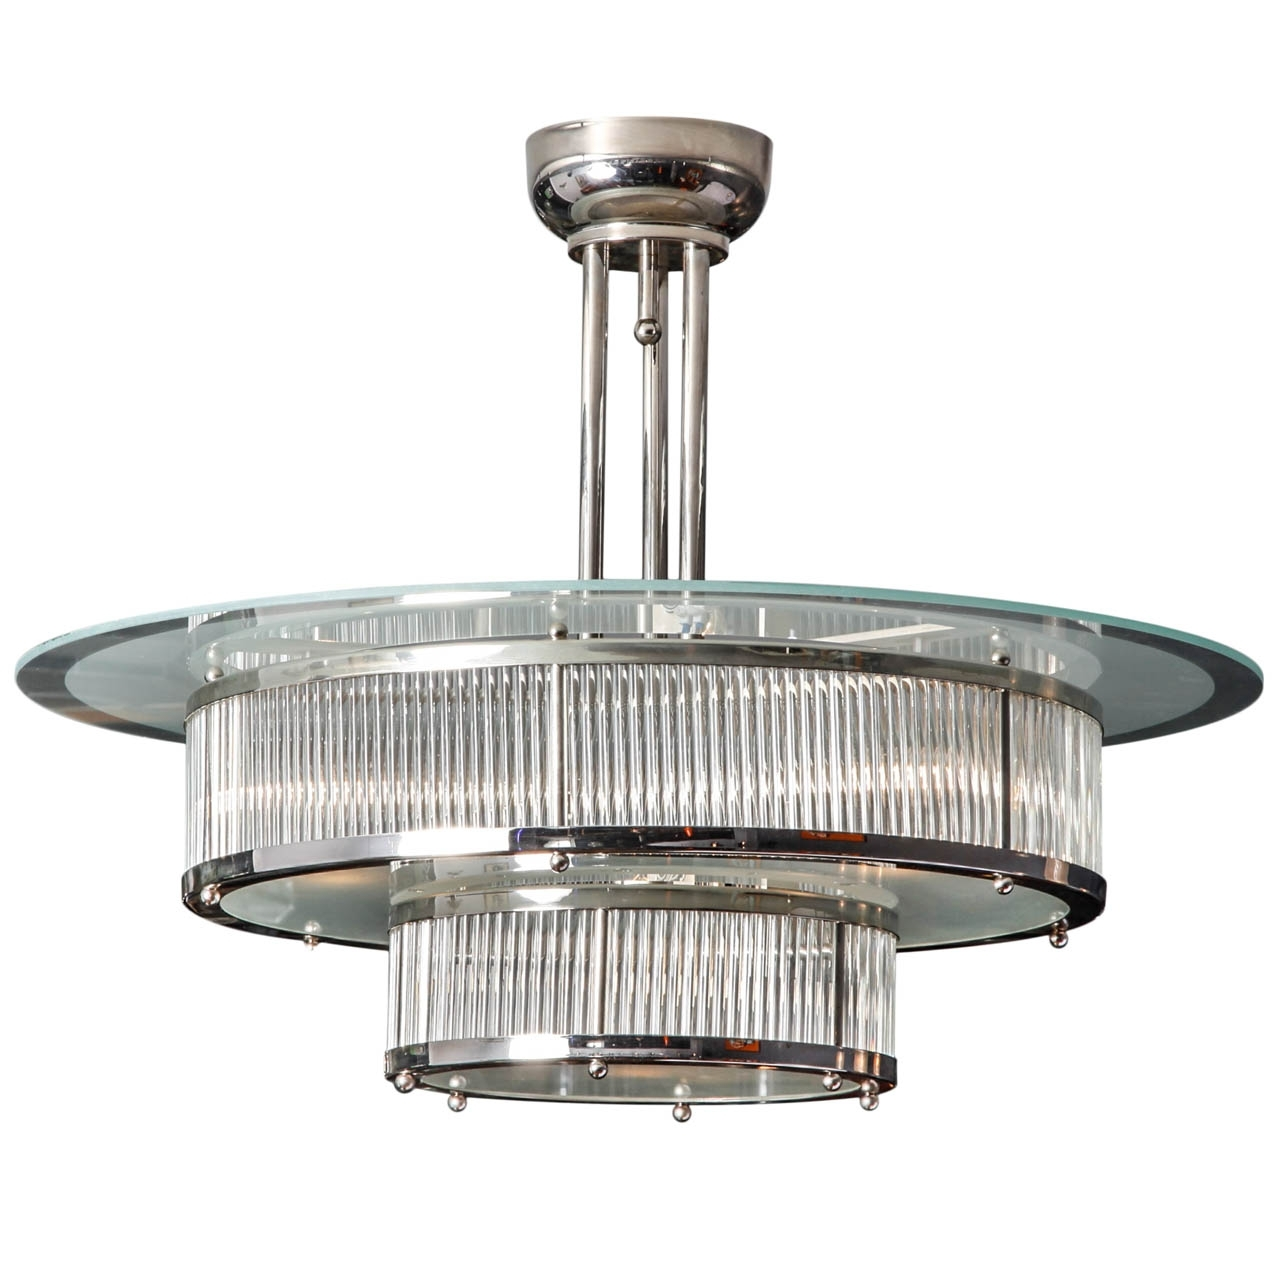 Modernism Regarding Trendy Art Deco Chandeliers (View 7 of 15)